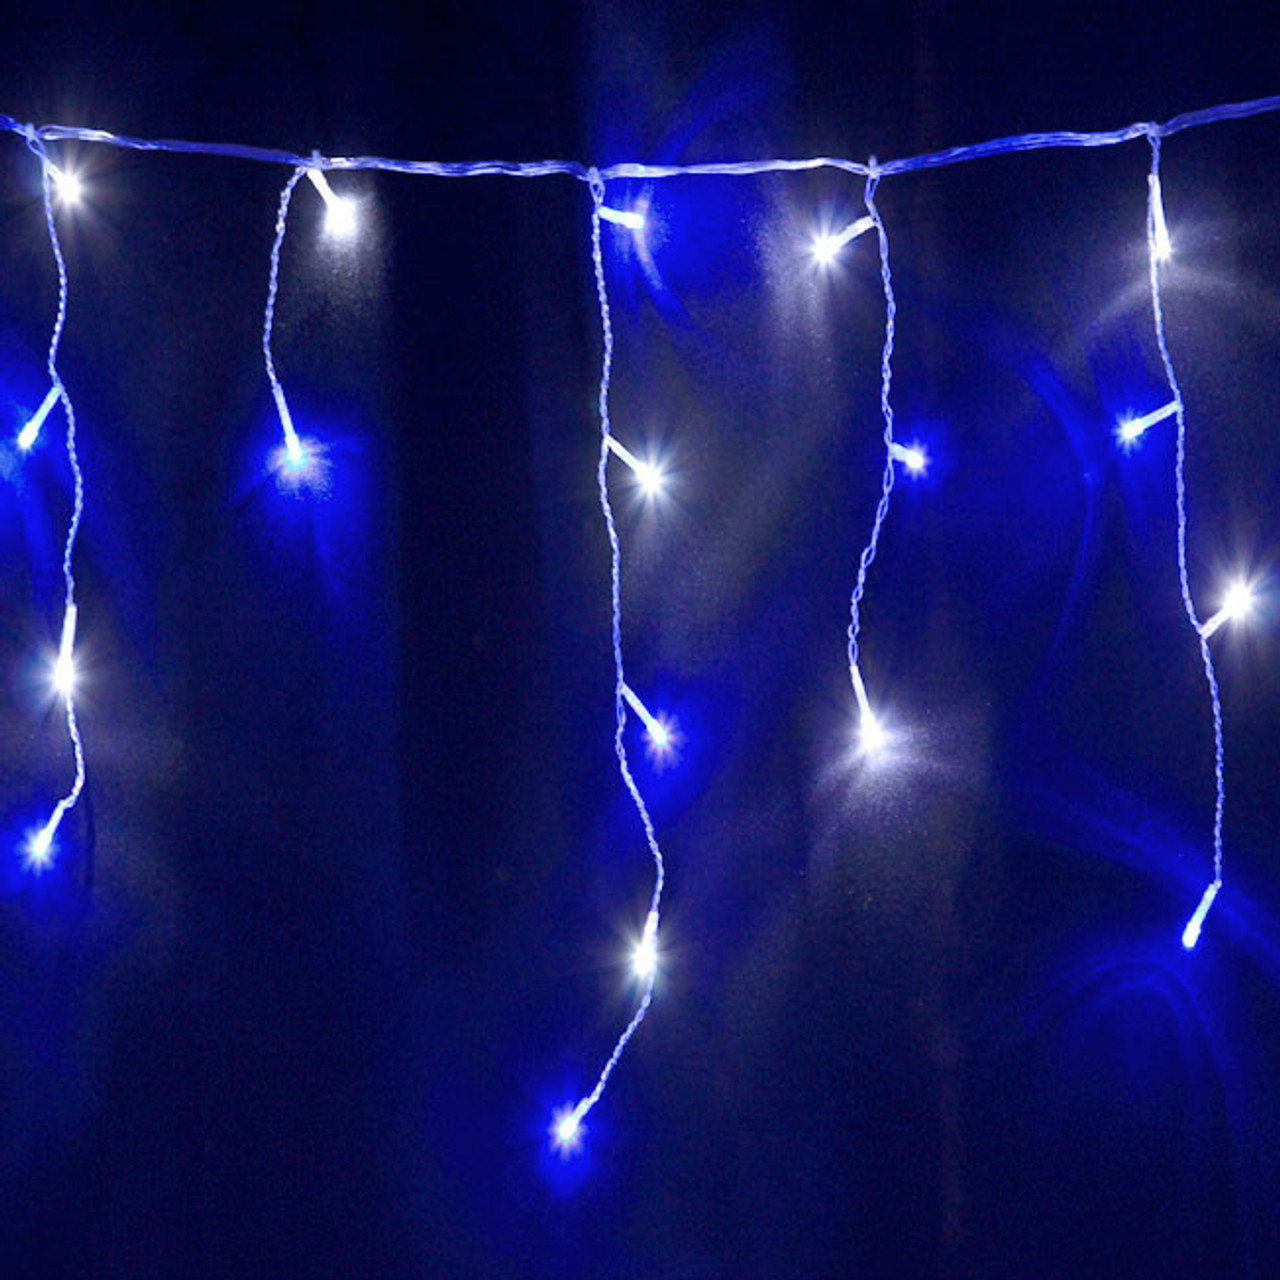 12 5m 292 Led Blue And White Christmas Icicle Lights With 8 Functions Memory